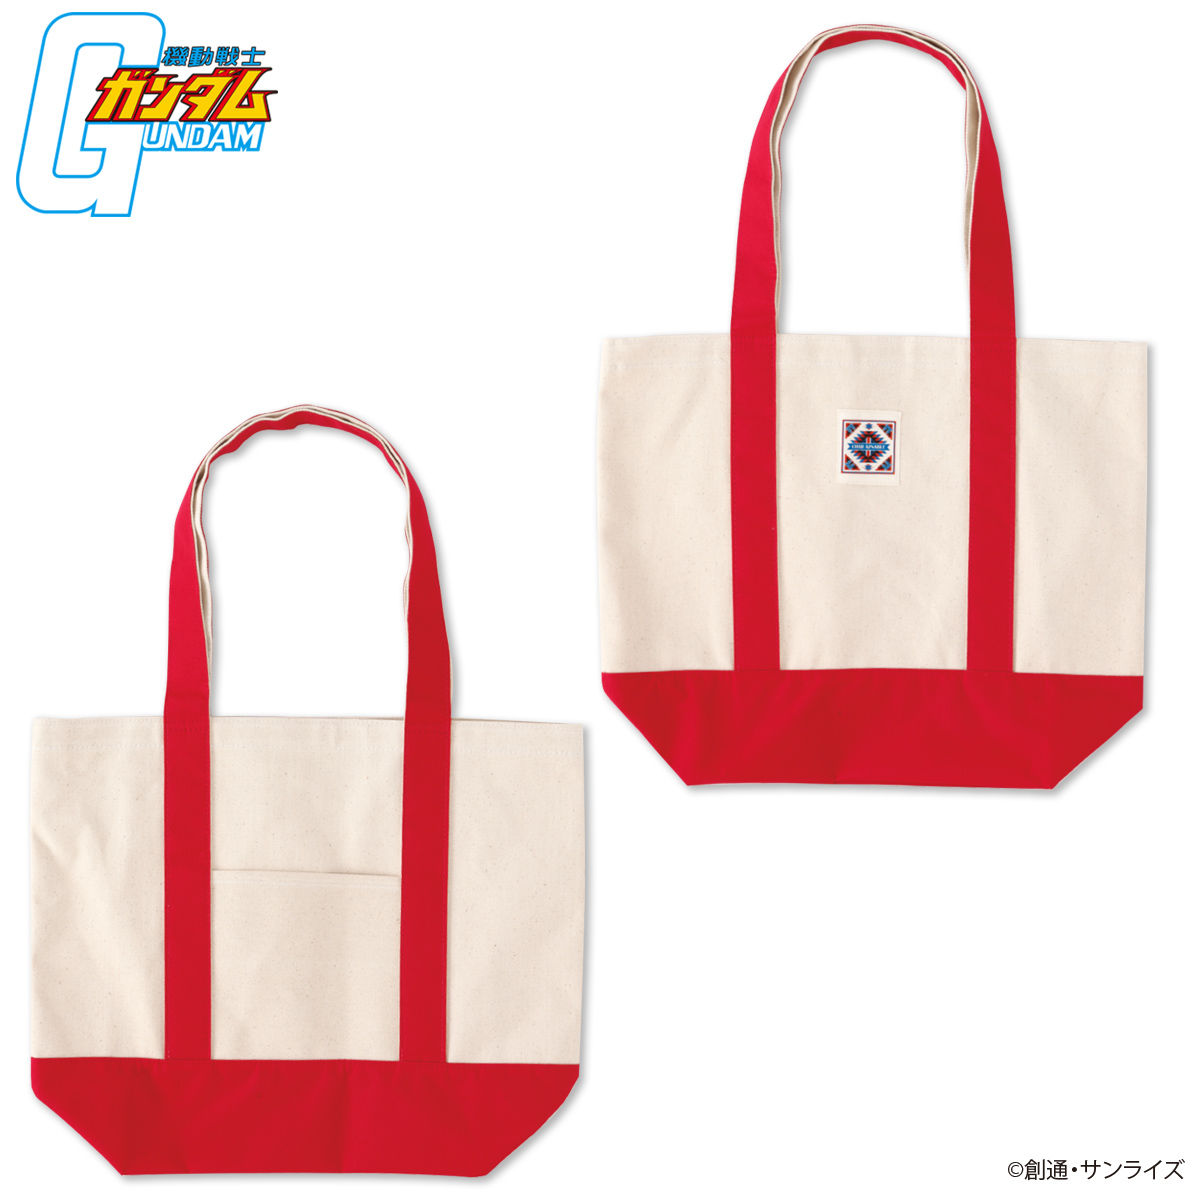 South-Western Style Tote Bag—Mobile Suit Gundam